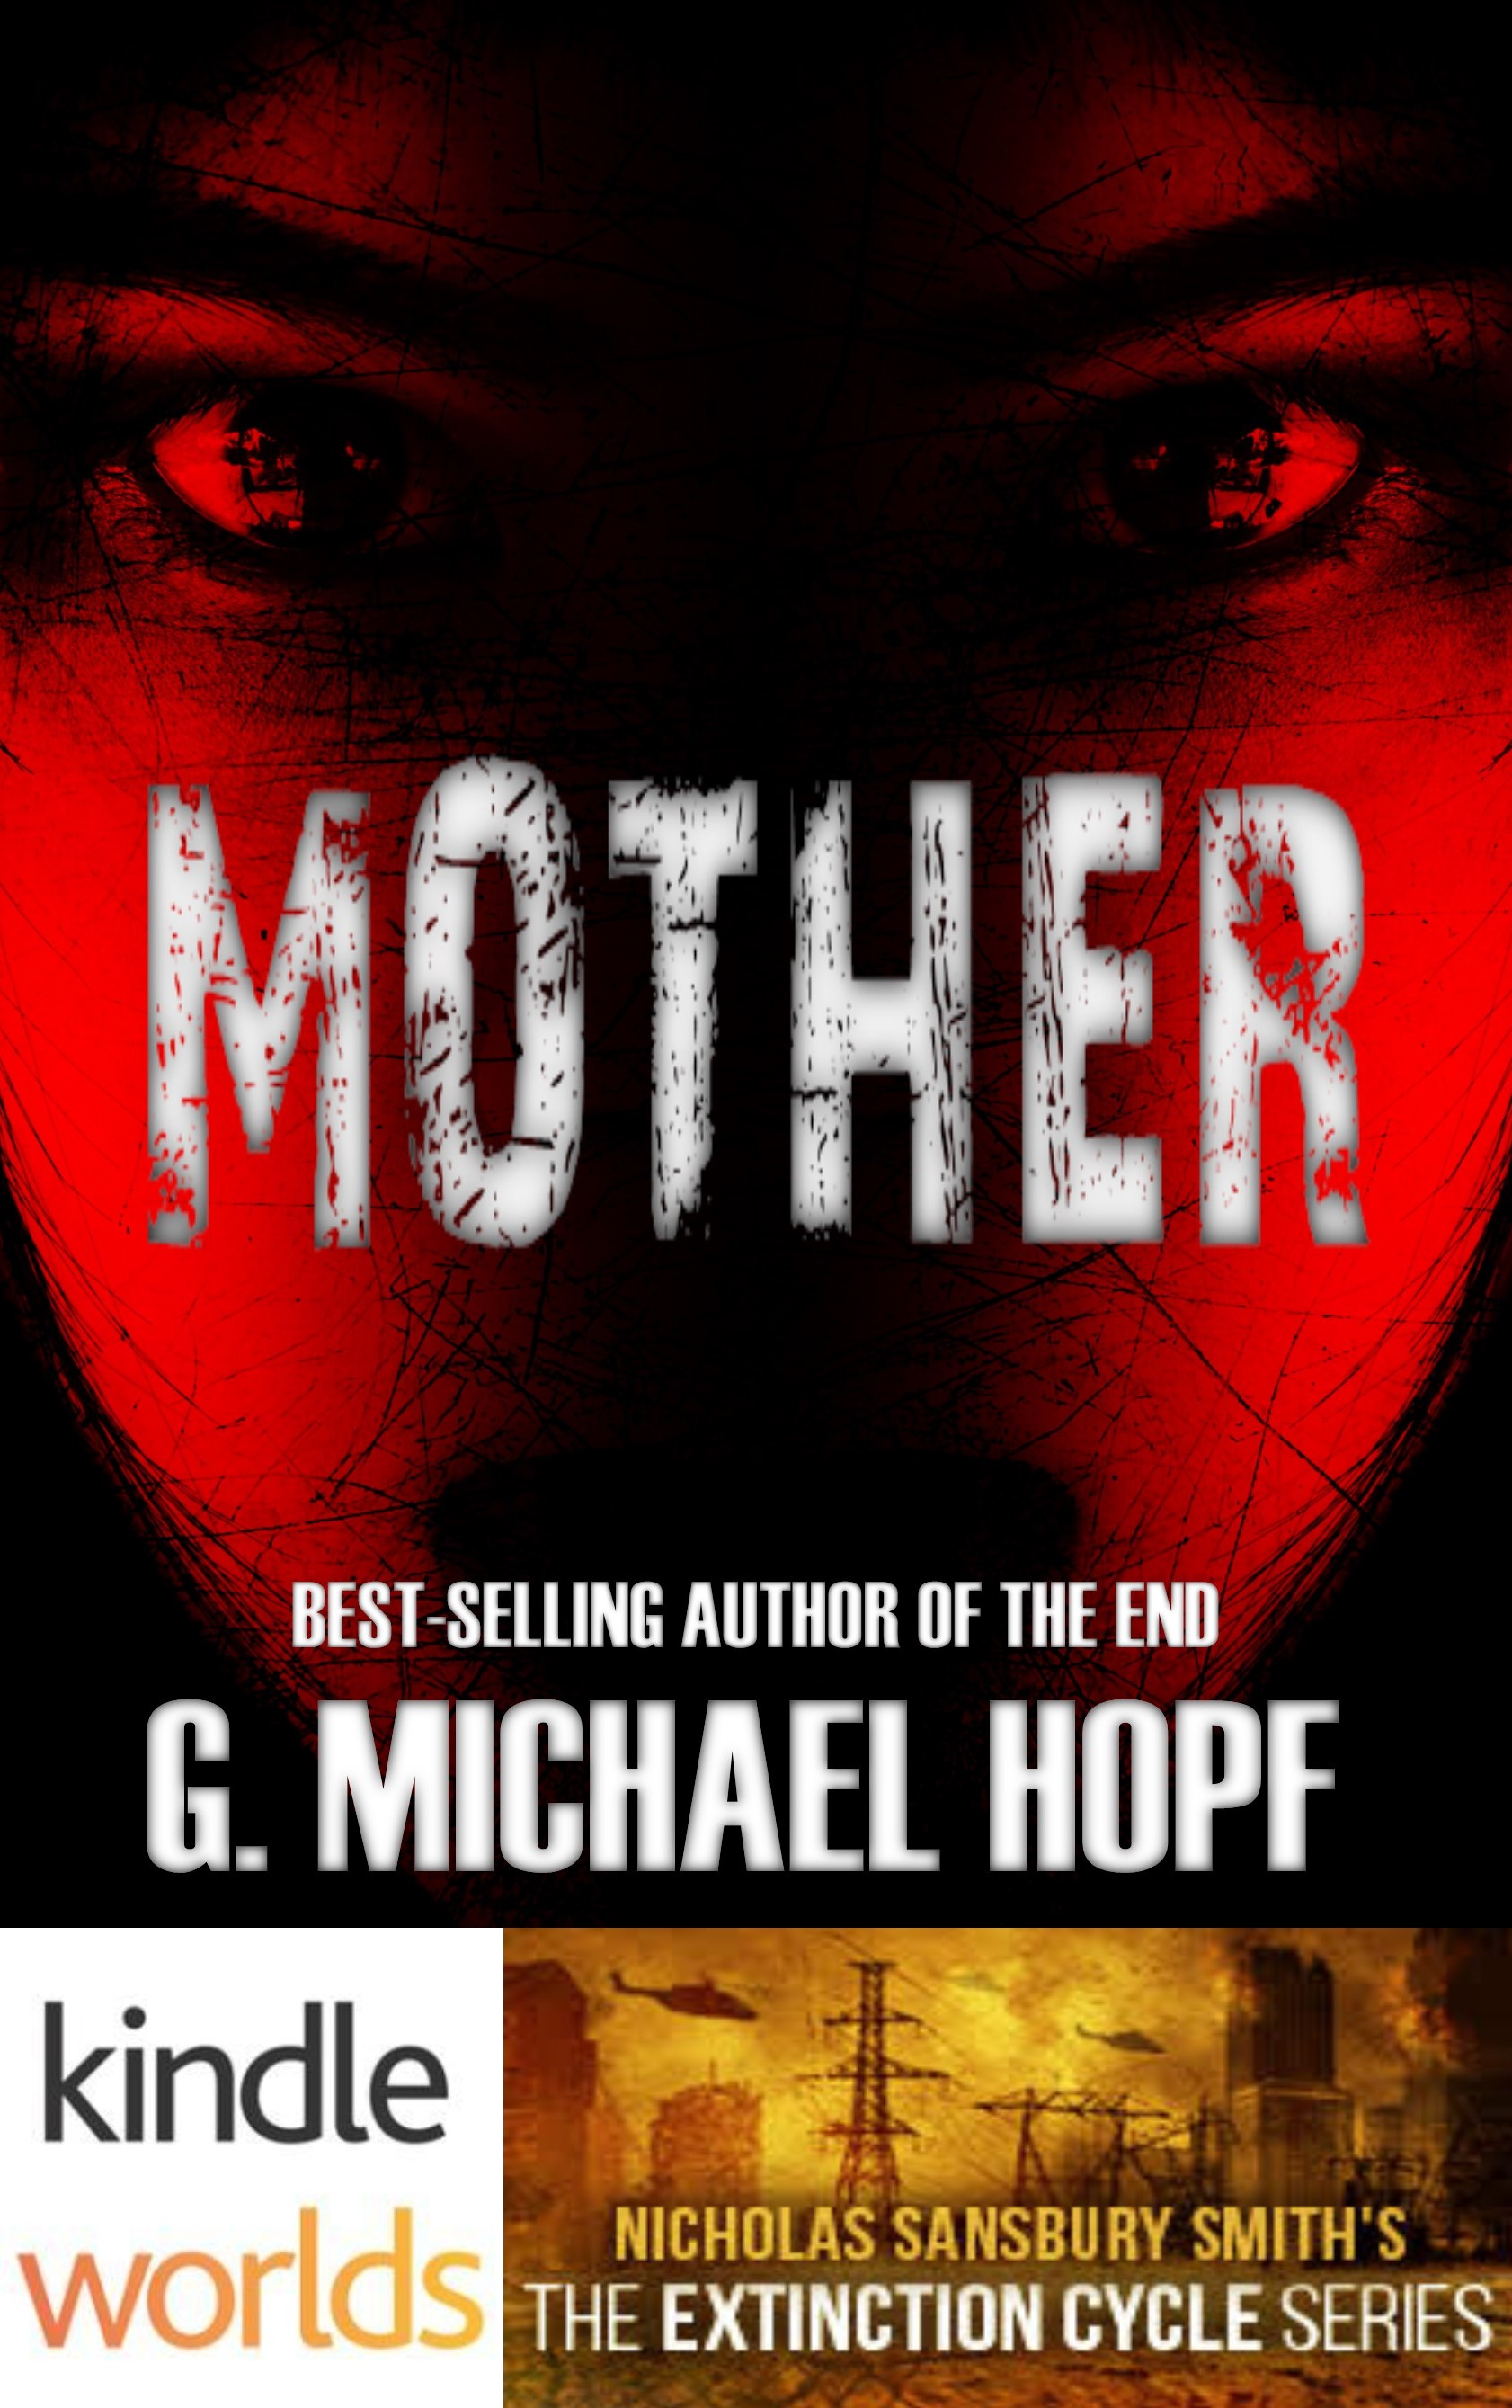 MOTHER Cover Concept